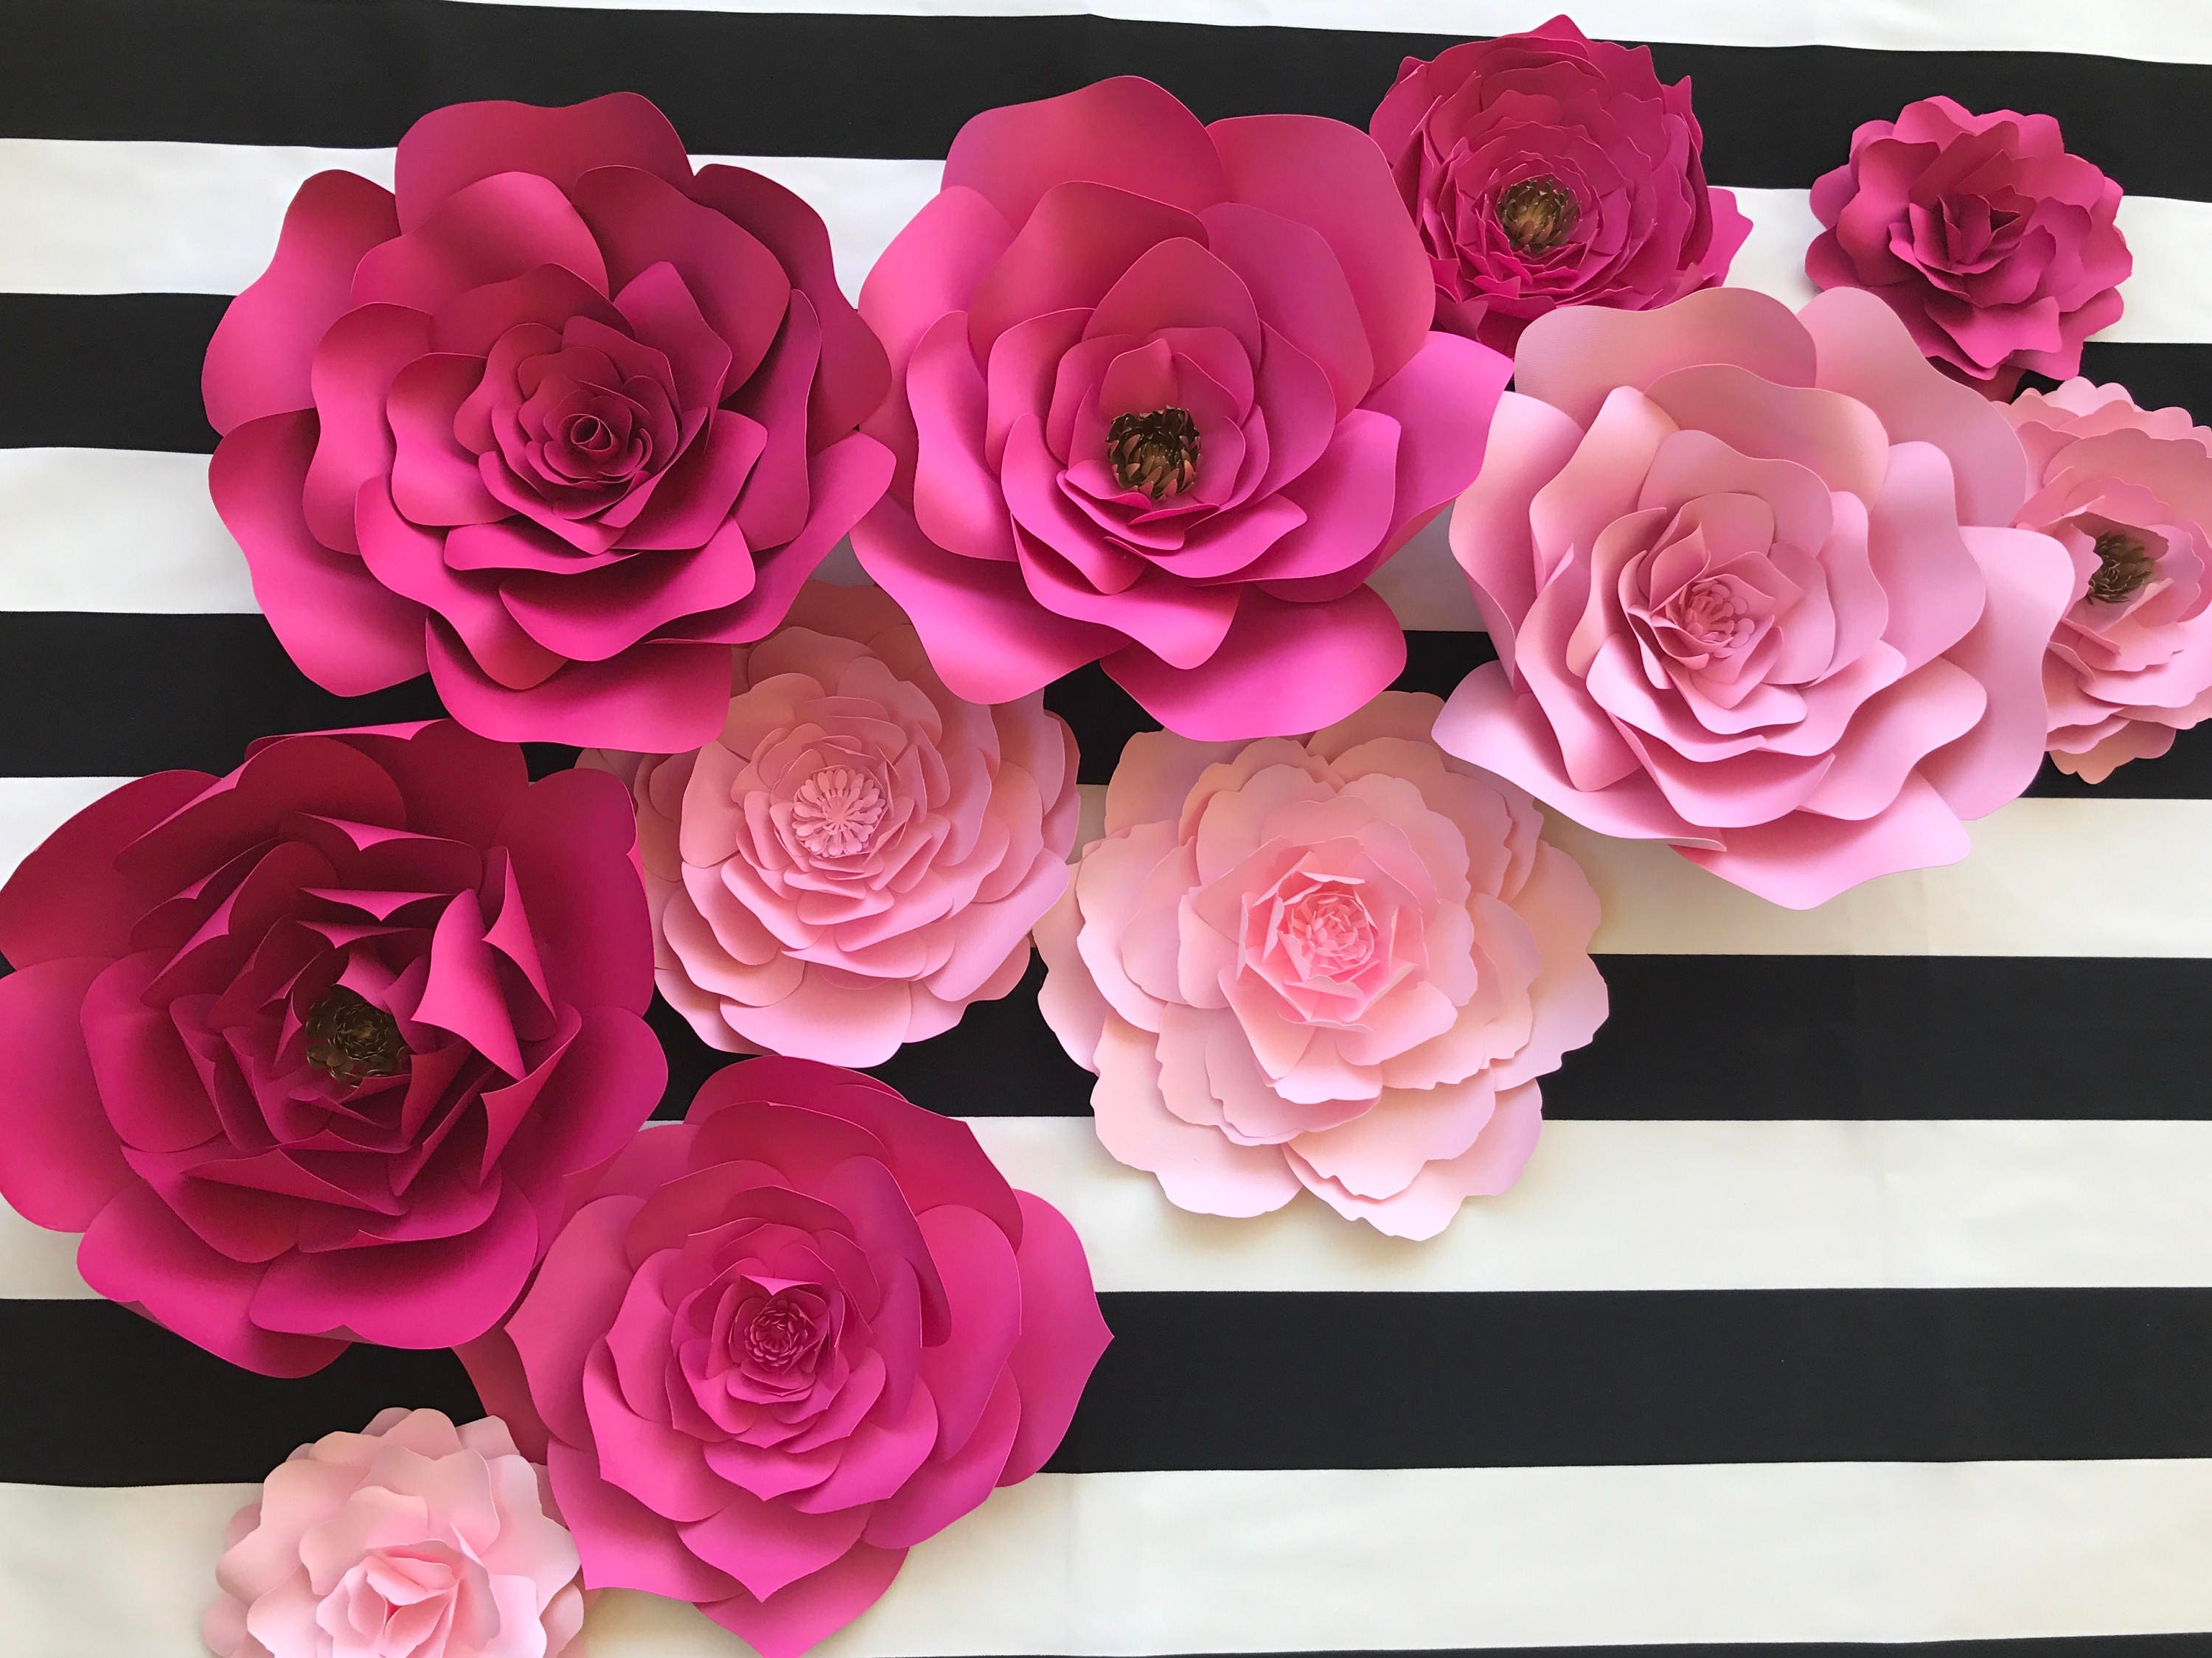 large paper flower backdrop for weddings showers and photo